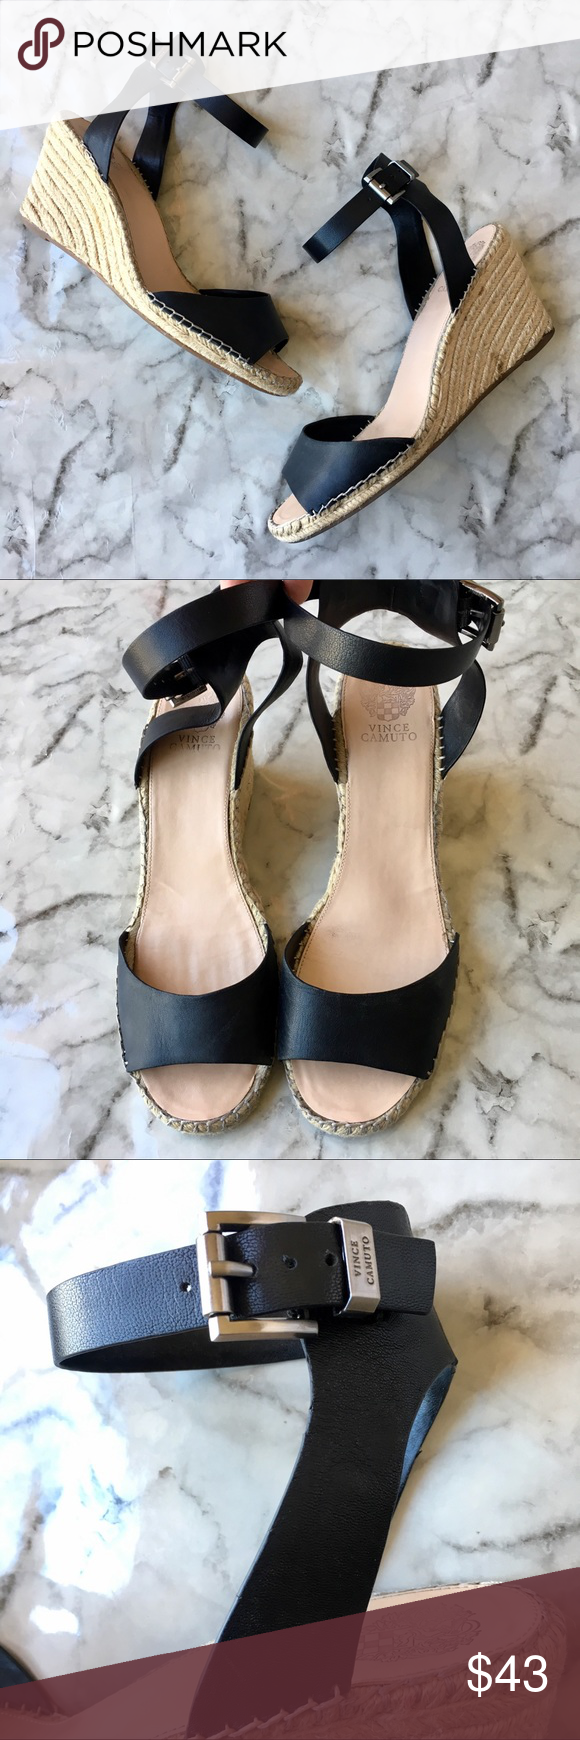 c09e666895a Vince Camuto Tagger Espadrille Wedge Sandals 13 Vince Camuto Tagger  Espadrille Wedge Sandals Black Leather Ankle